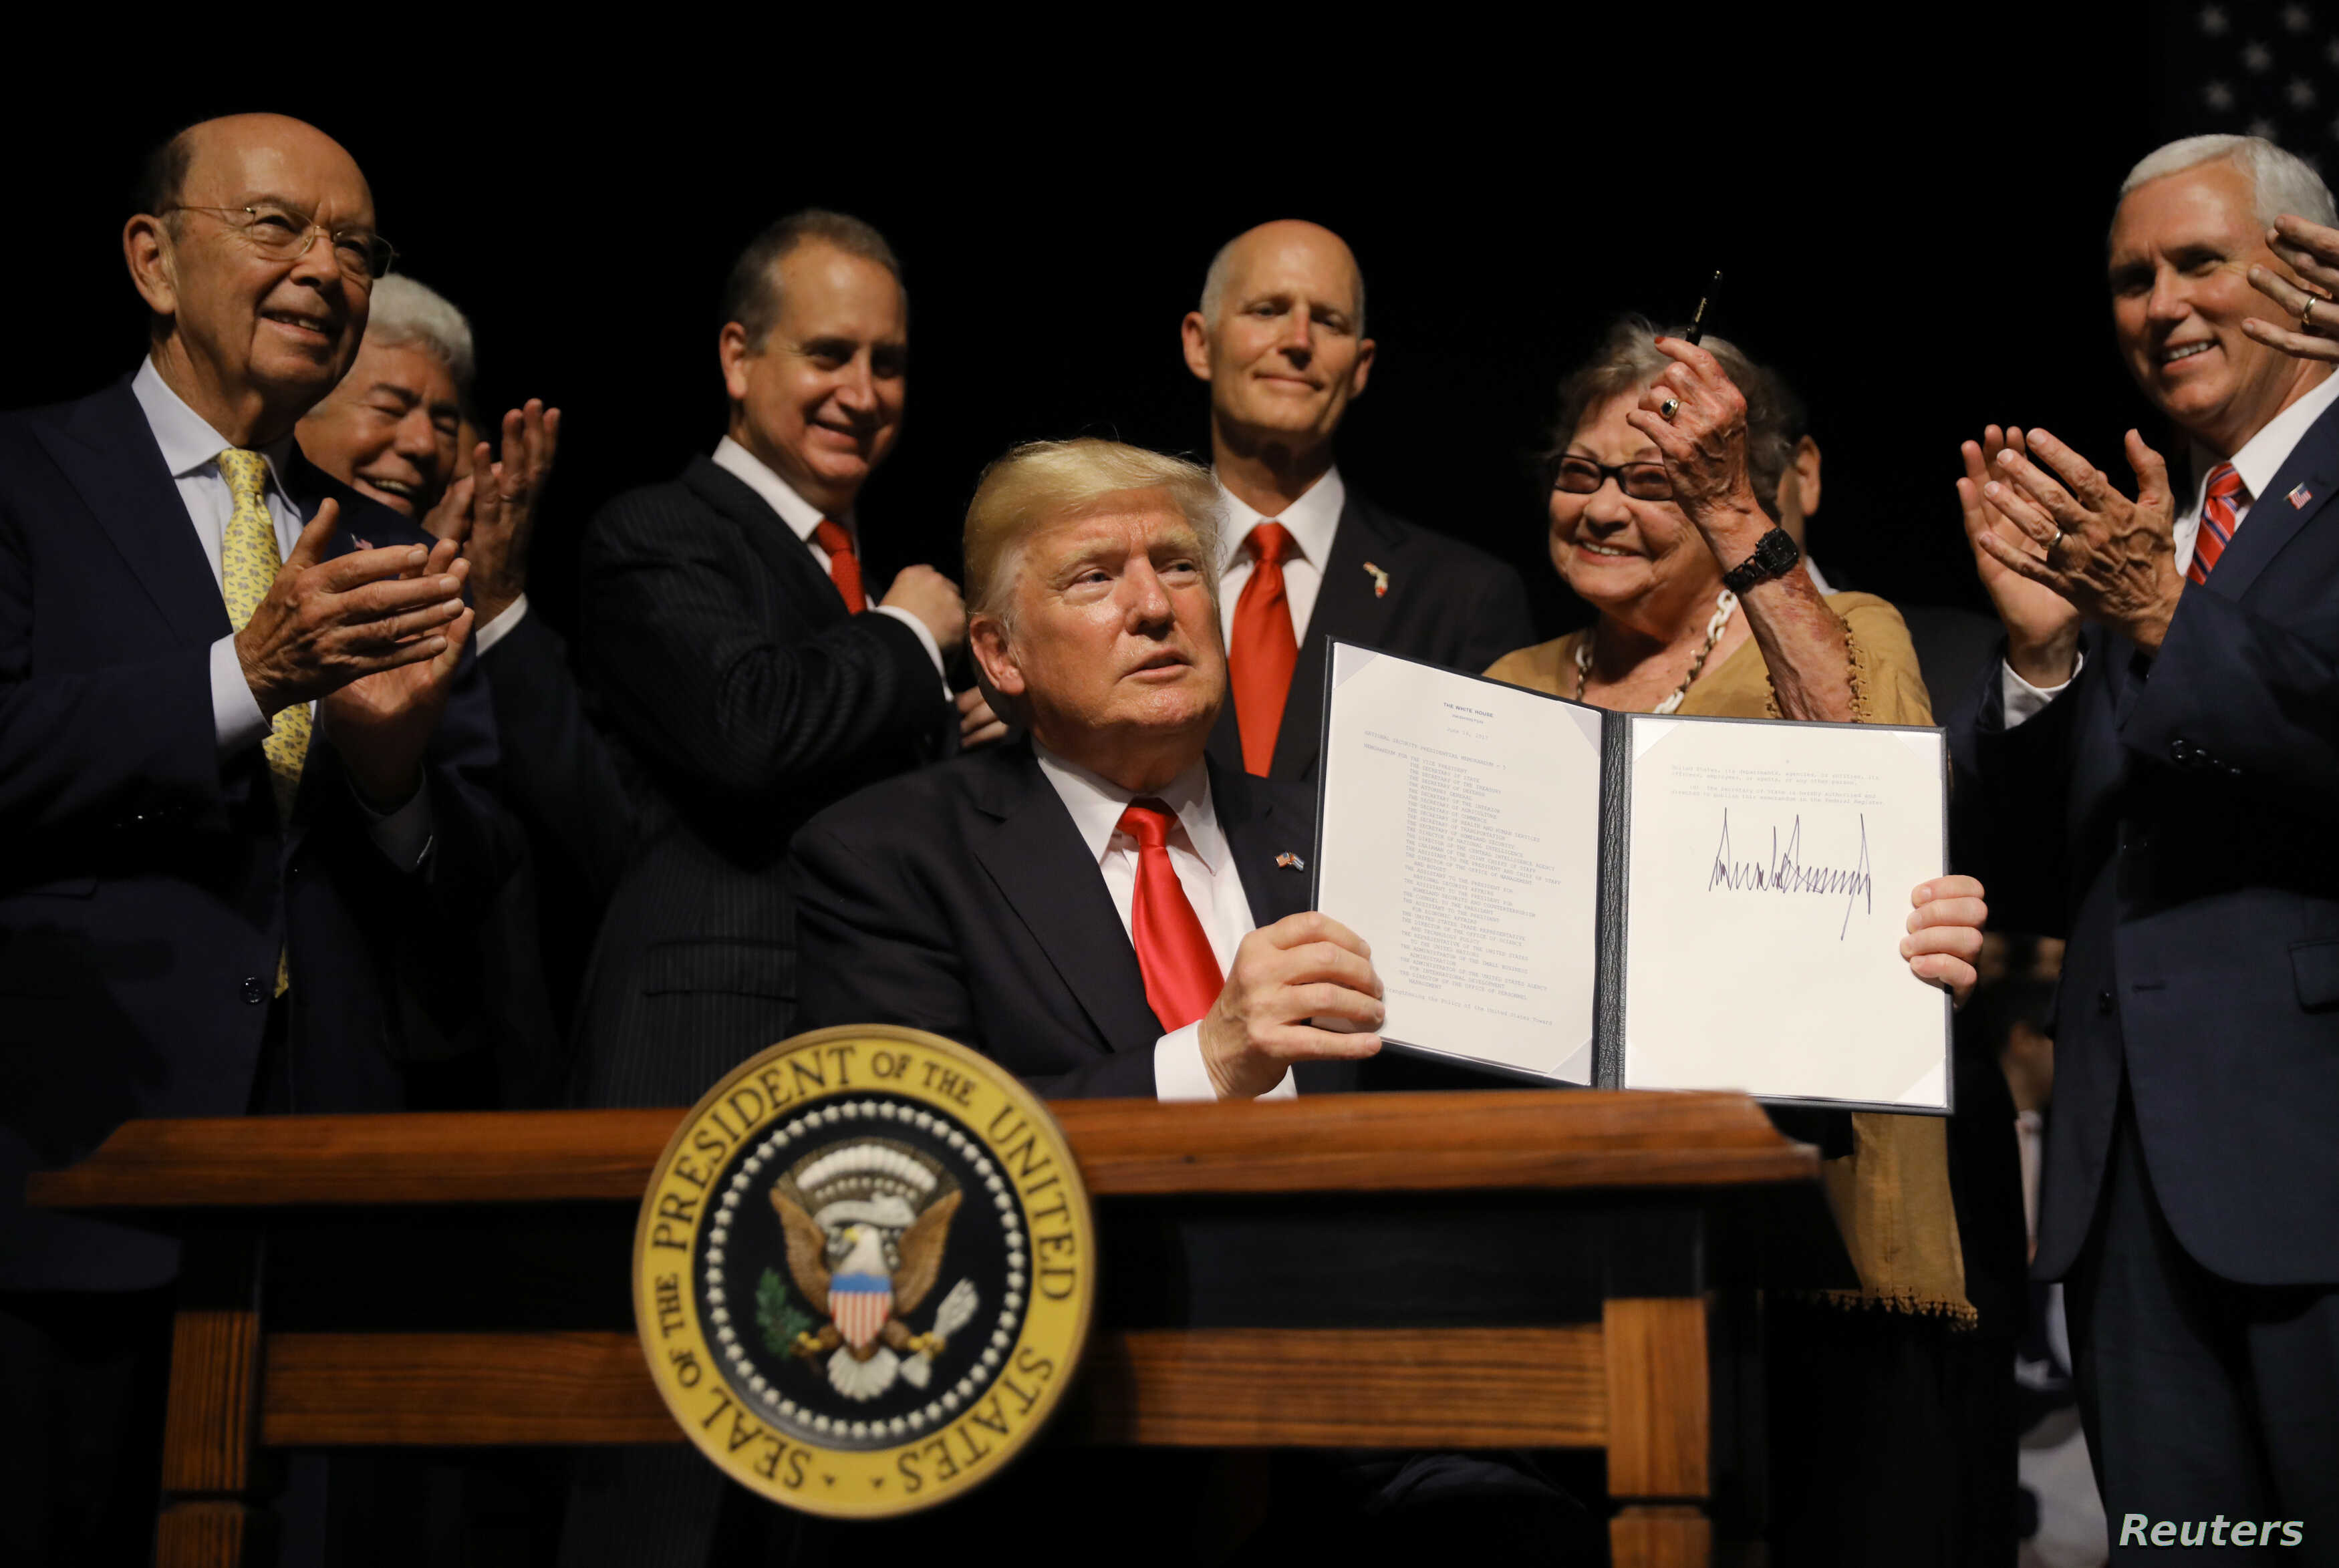 U.S. President Donald Trump is applauded after signing an Executive Order on US-Cuba policy at the Manuel Artime Theater in Miami, Florida, U.S